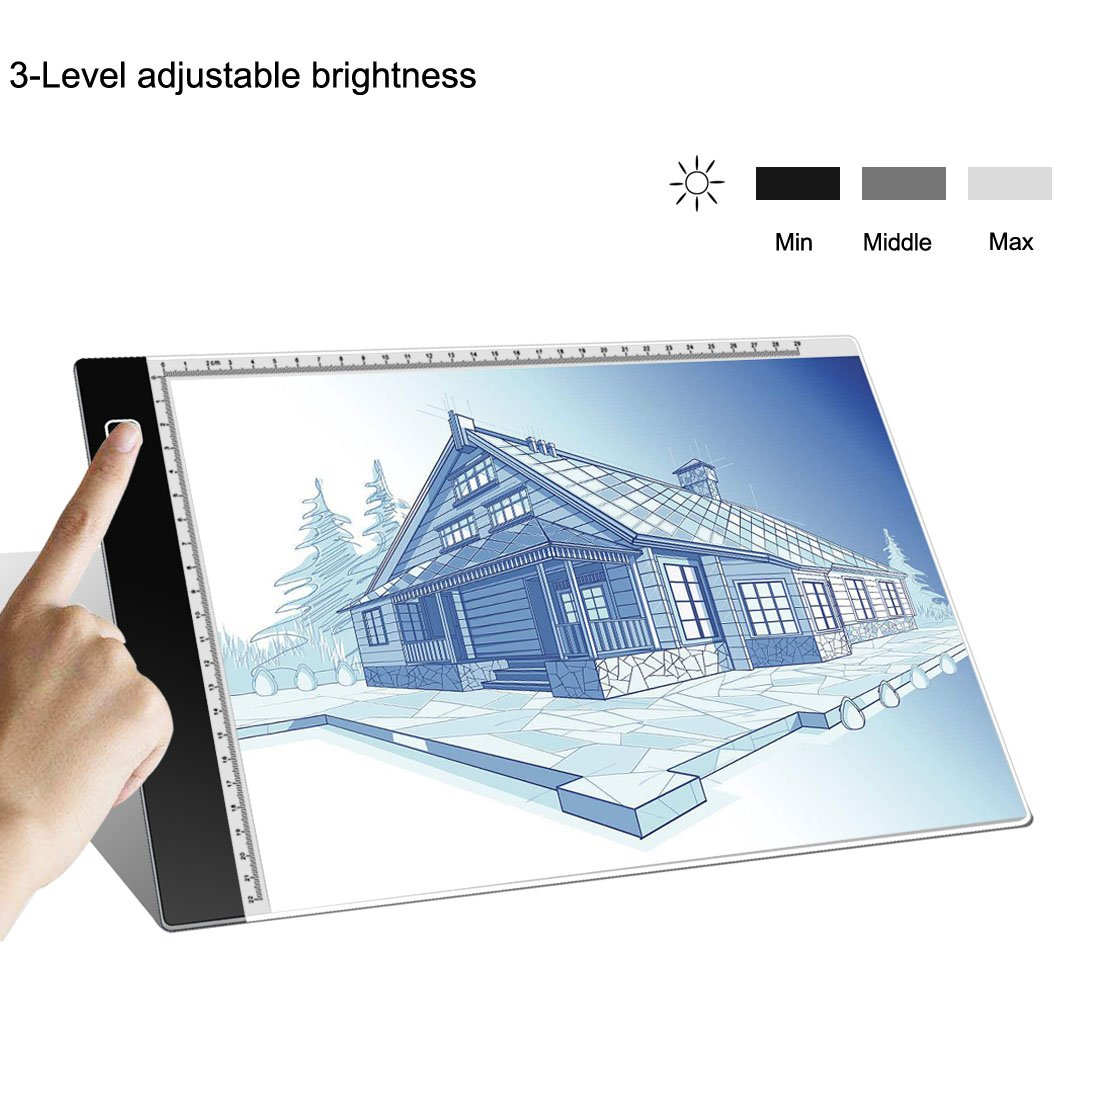 Tracing Light Box A4 Ultra-Thin Portable LED Light Box Tracer USB Power Cable Dimmable Brightness LED Artcraft Tracing Light Pad for Artists Drawing Sketching Animation Stencilling X-rayViewing